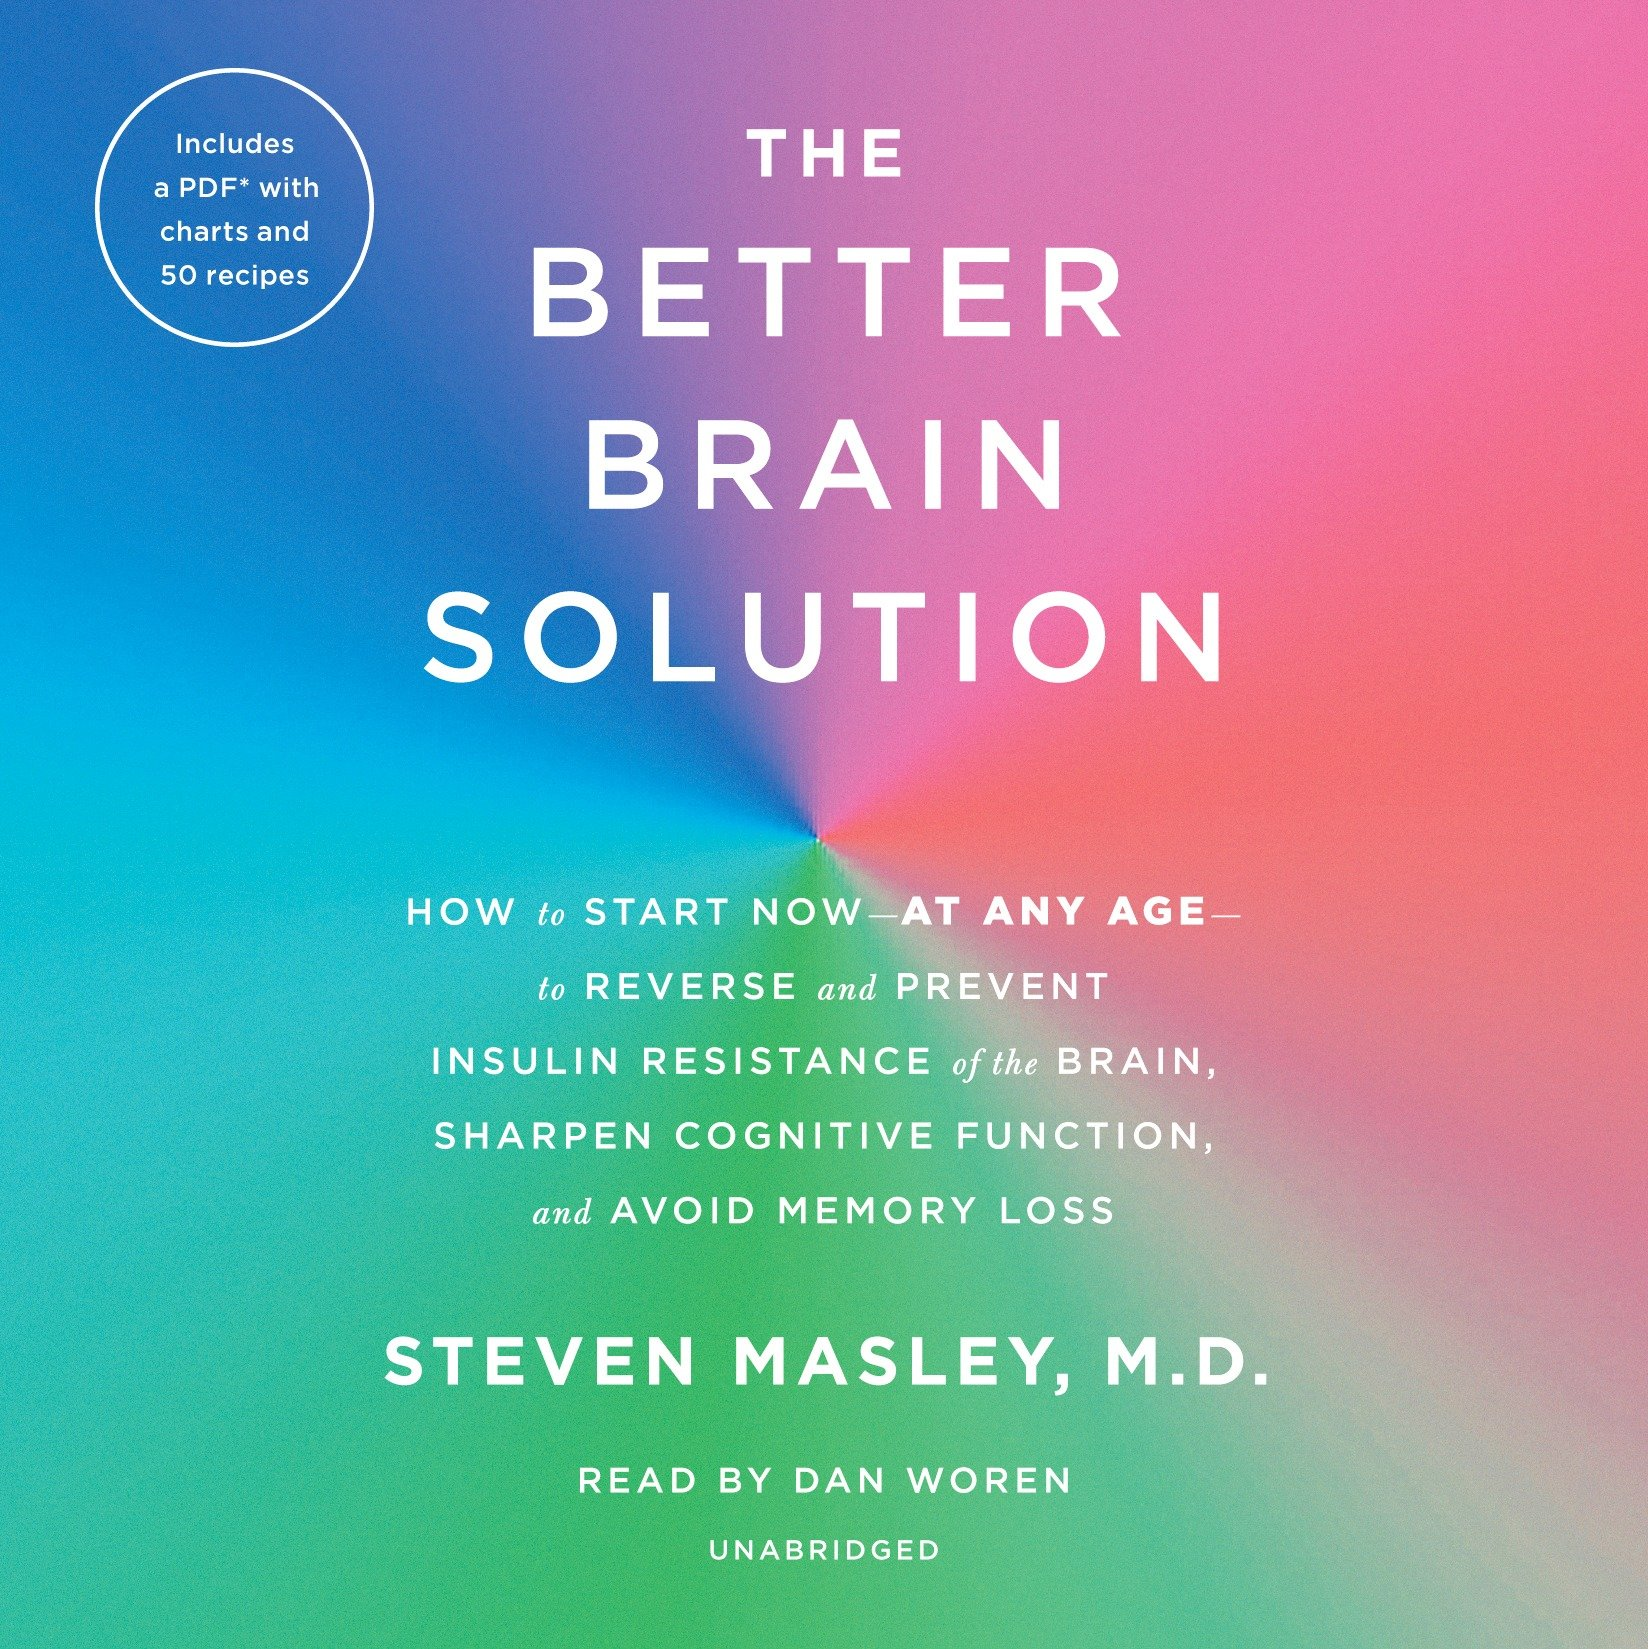 The Better Brain Solution : How to Start Now--at Any Age--to Reverse and Prevent Insulin Resistance of the Brain, Sharpen Cognitive Function, and Avoid Memory Loss